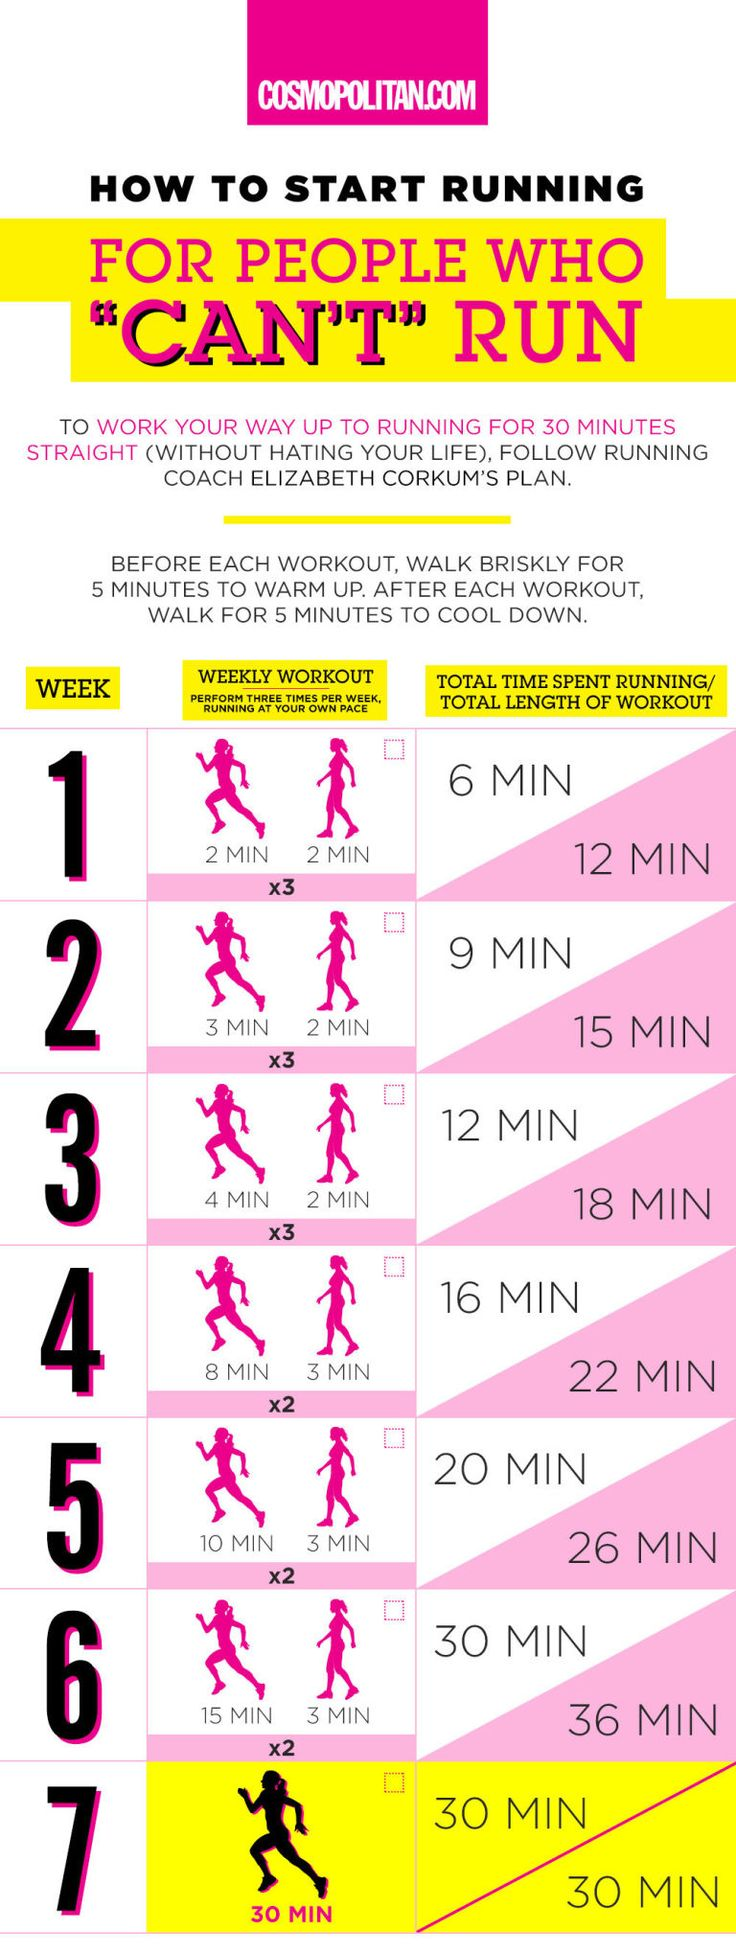 RUNNING WORKOUT FOR BEGINNERS: Build a runner's body (and get the bragging rights too) with this simple and effective running workout that anyone can do. Running will always deliver a superior cardio workout compared to walking, she adds. And it feels pretty badass to call yourself a runner. Luckily, almost anyone can turn a basic walk into a run without hating life — here are some things to keep in mind. Click through for running tips, free exercises and training workouts, running…